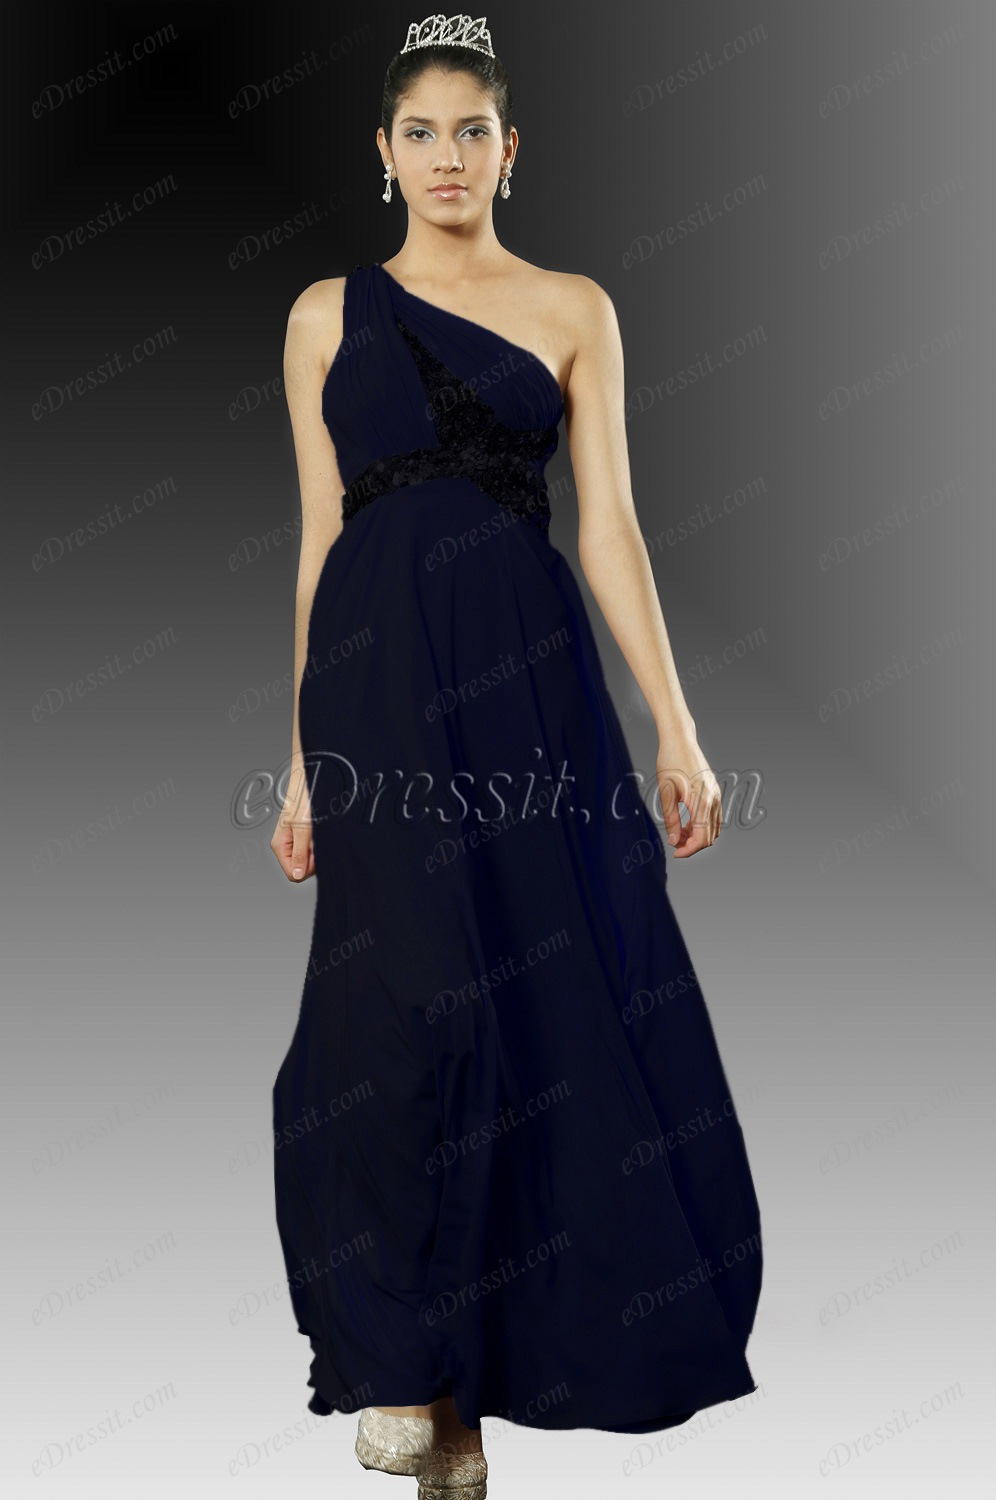 Clearance Sale ! eDressit Halle Berry Party Dress Dark Blue (A00100501)